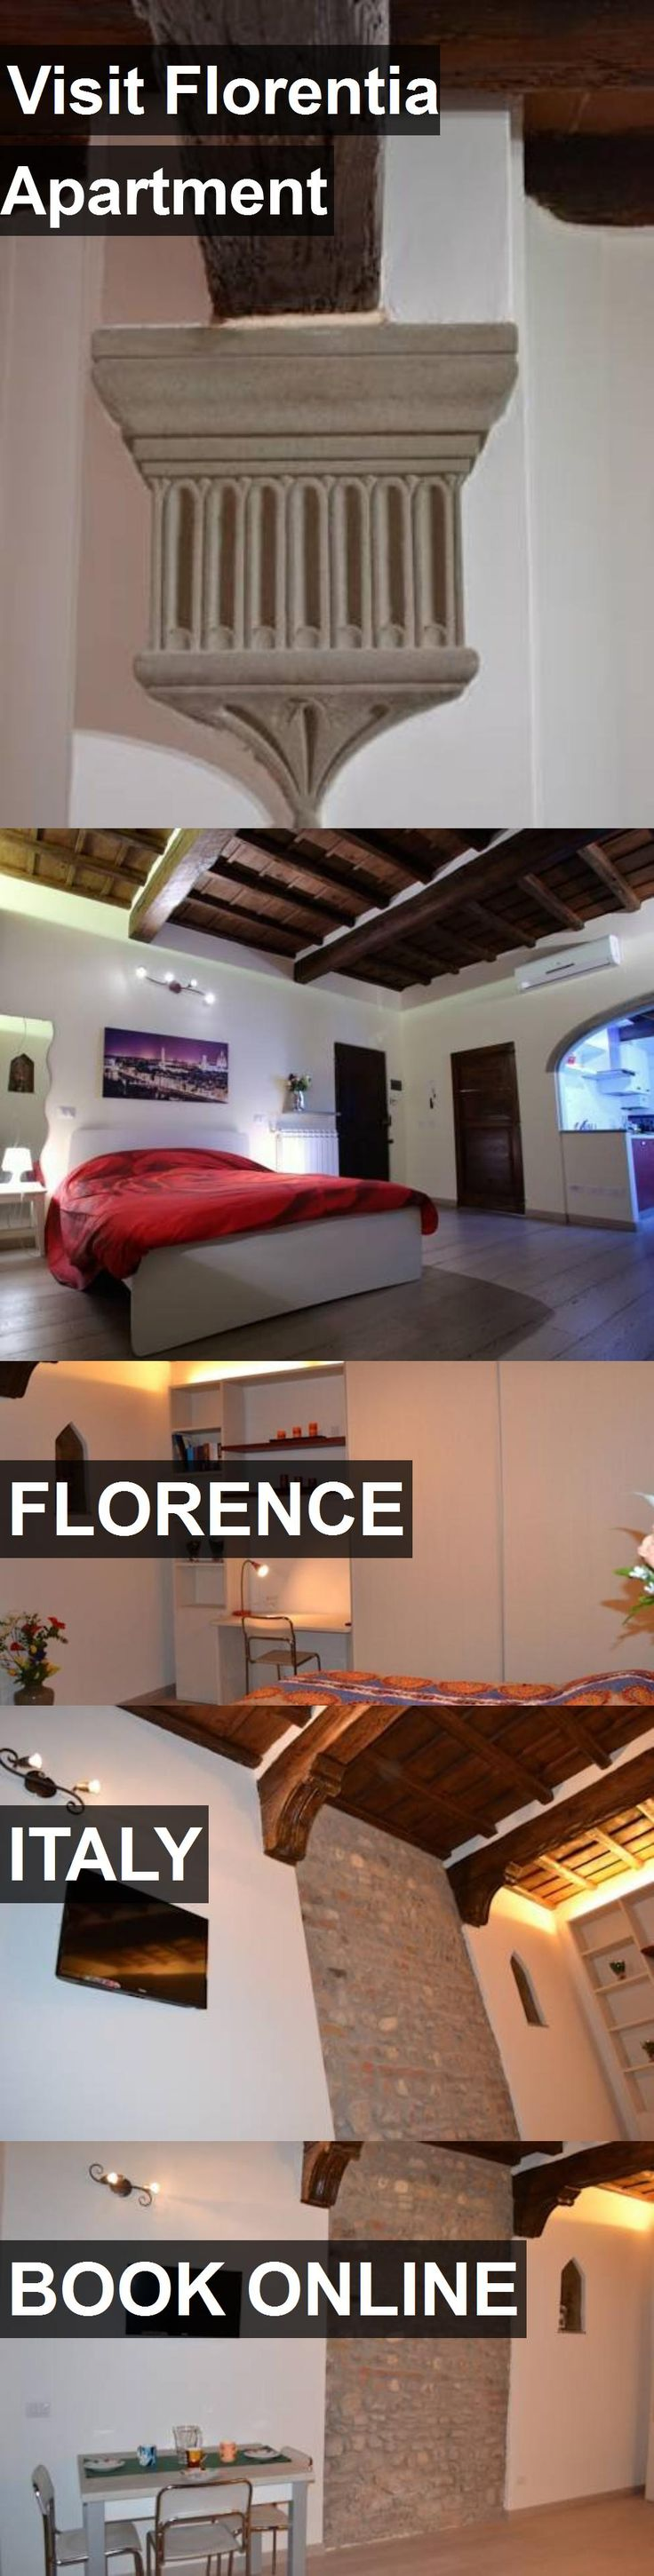 Visit Florentia Apartment in Florence, Italy. For more information, photos, reviews and best prices please follow the link. #Italy #Florence #travel #vacation #apartment